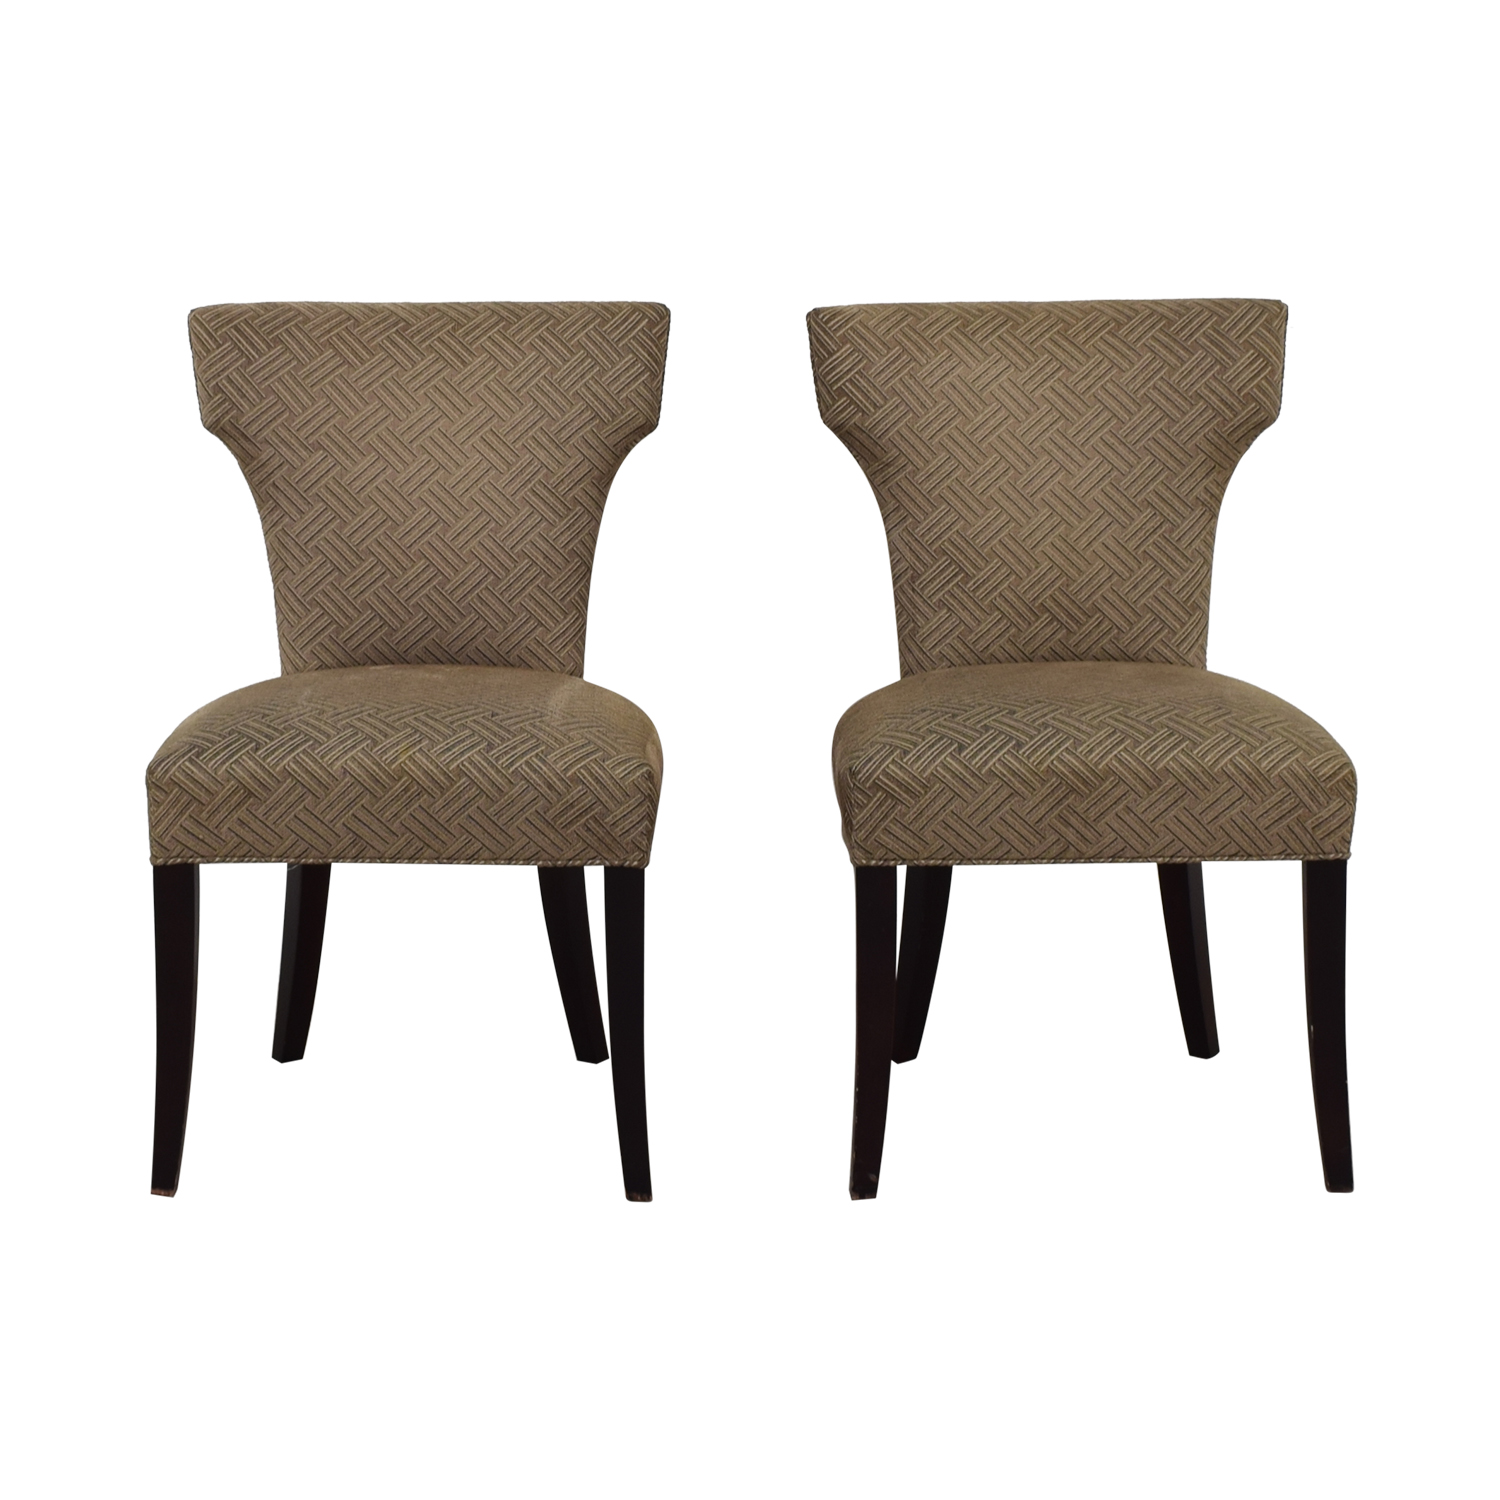 shop Crate & Barrel Crate & Barrel Sasha Upholstered Dining Chairs online